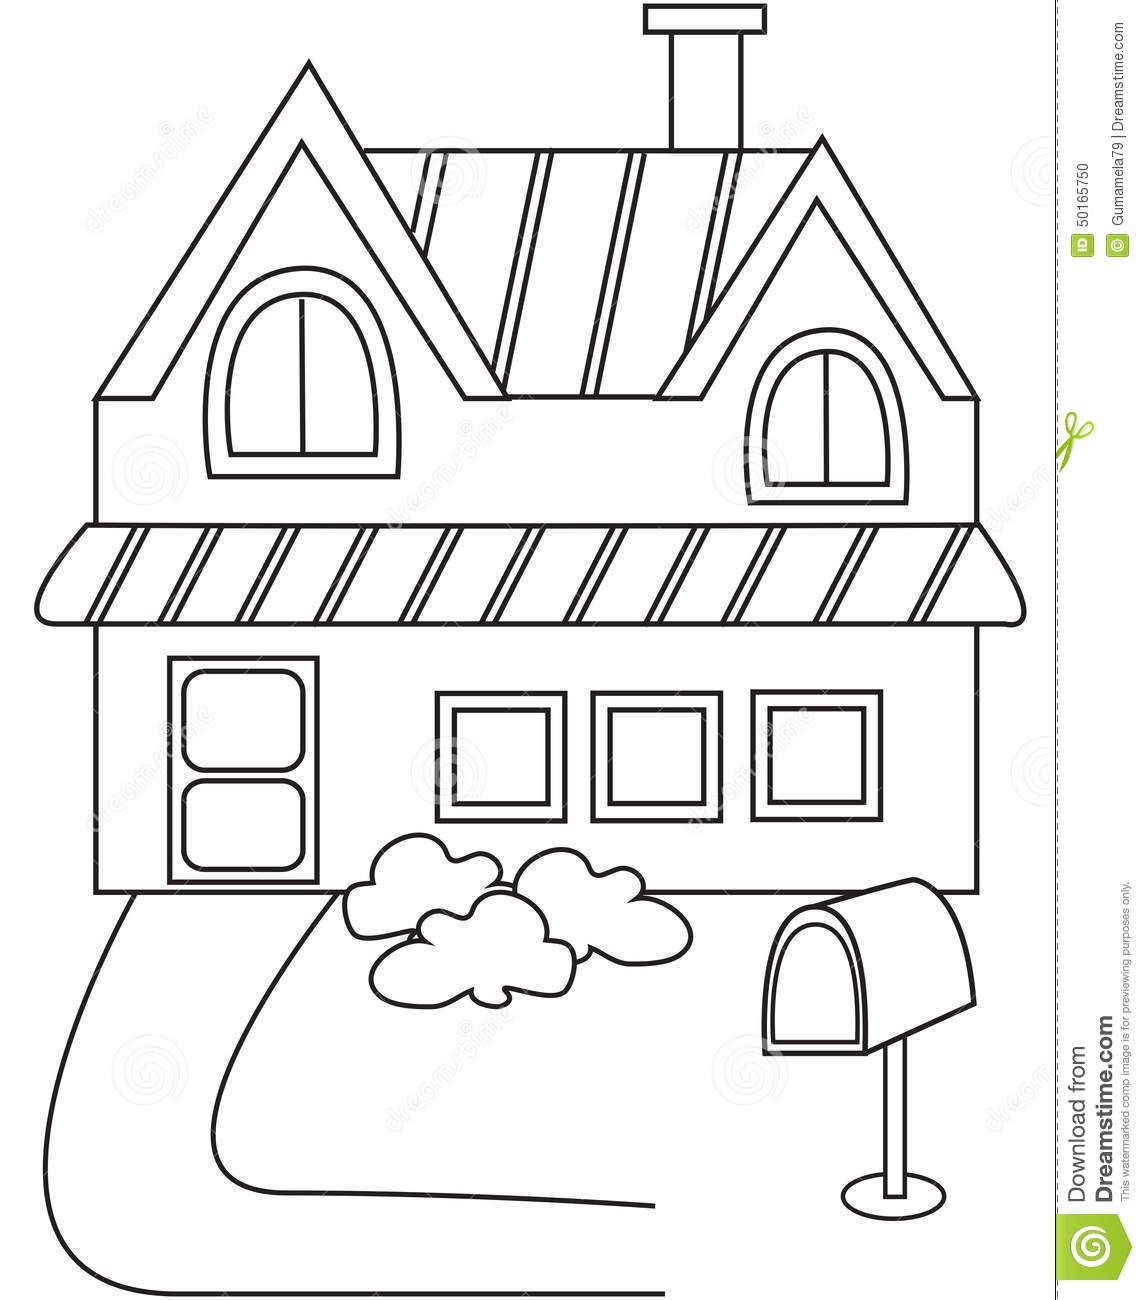 House Coloring Stock Illustrations 7 533 House Coloring Stock Illustrations Vectors Clipart Dreamstime